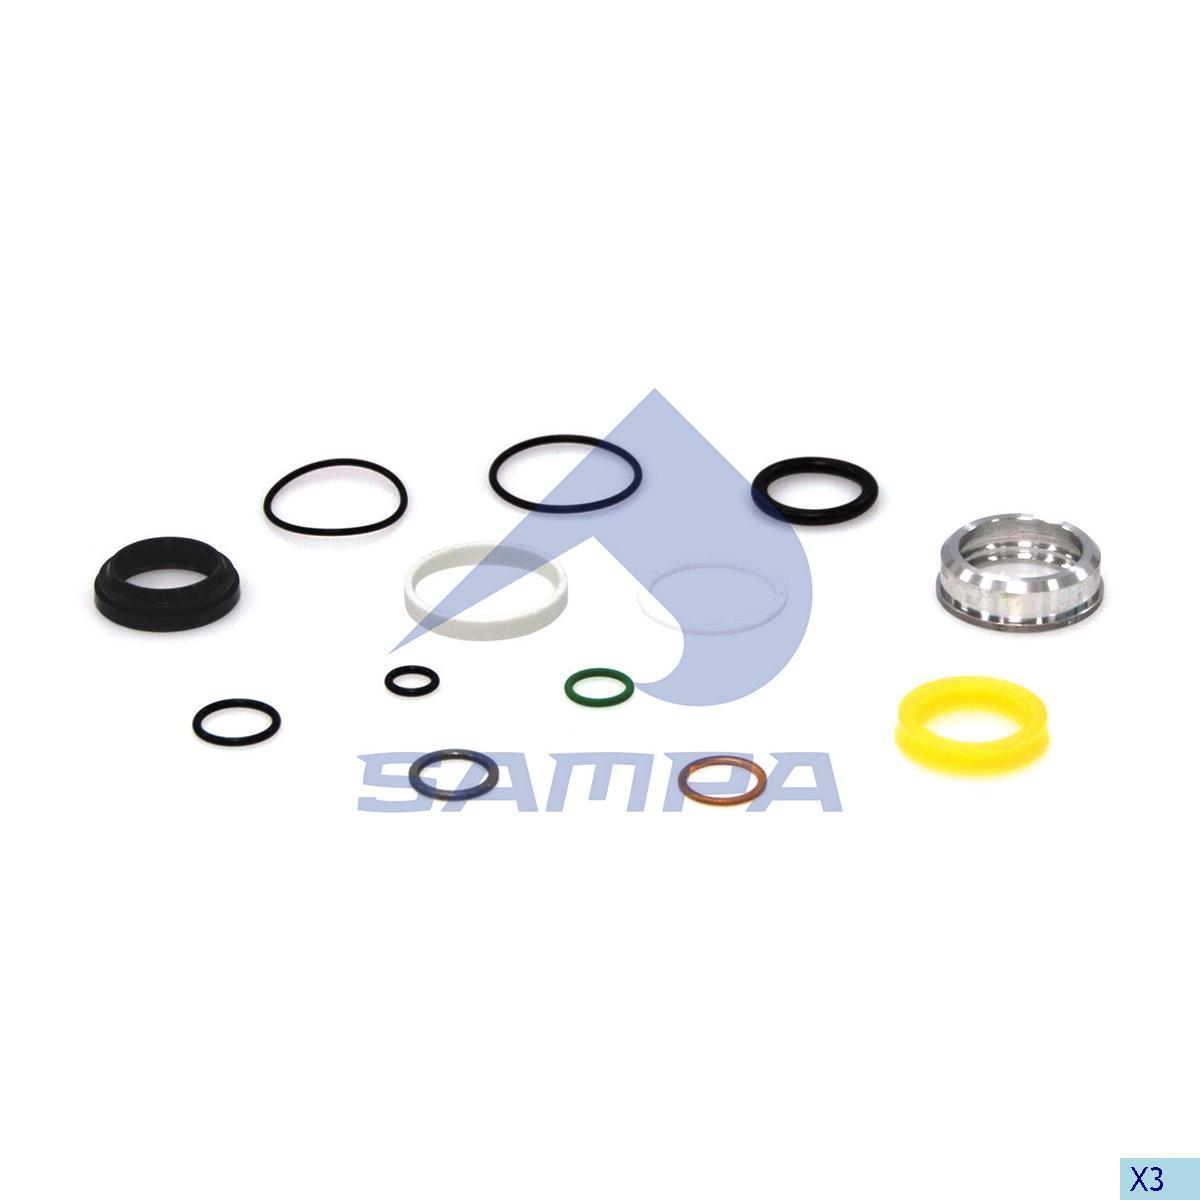 Repair Kit, Cab Tilt, Daf, Cab